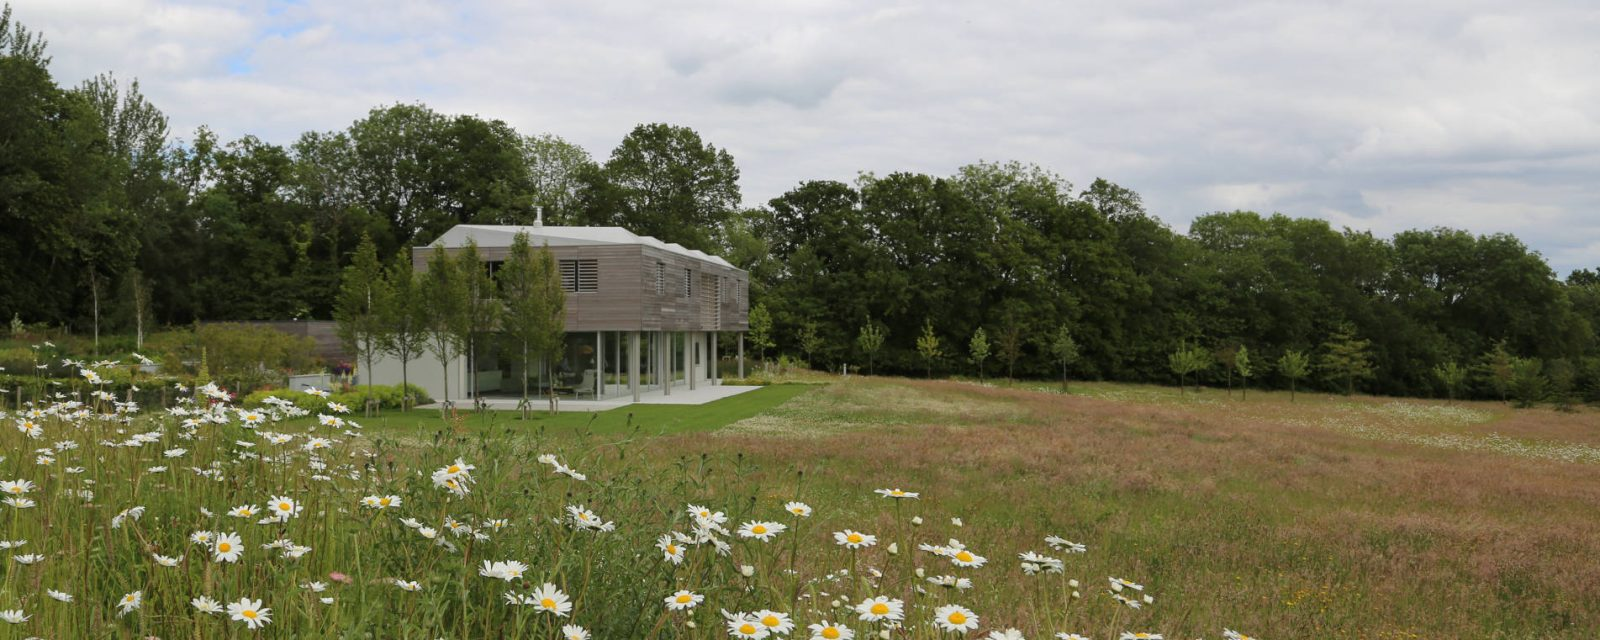 Wide Shot Of Sussex House With Background Trees and Field With Wildflowers